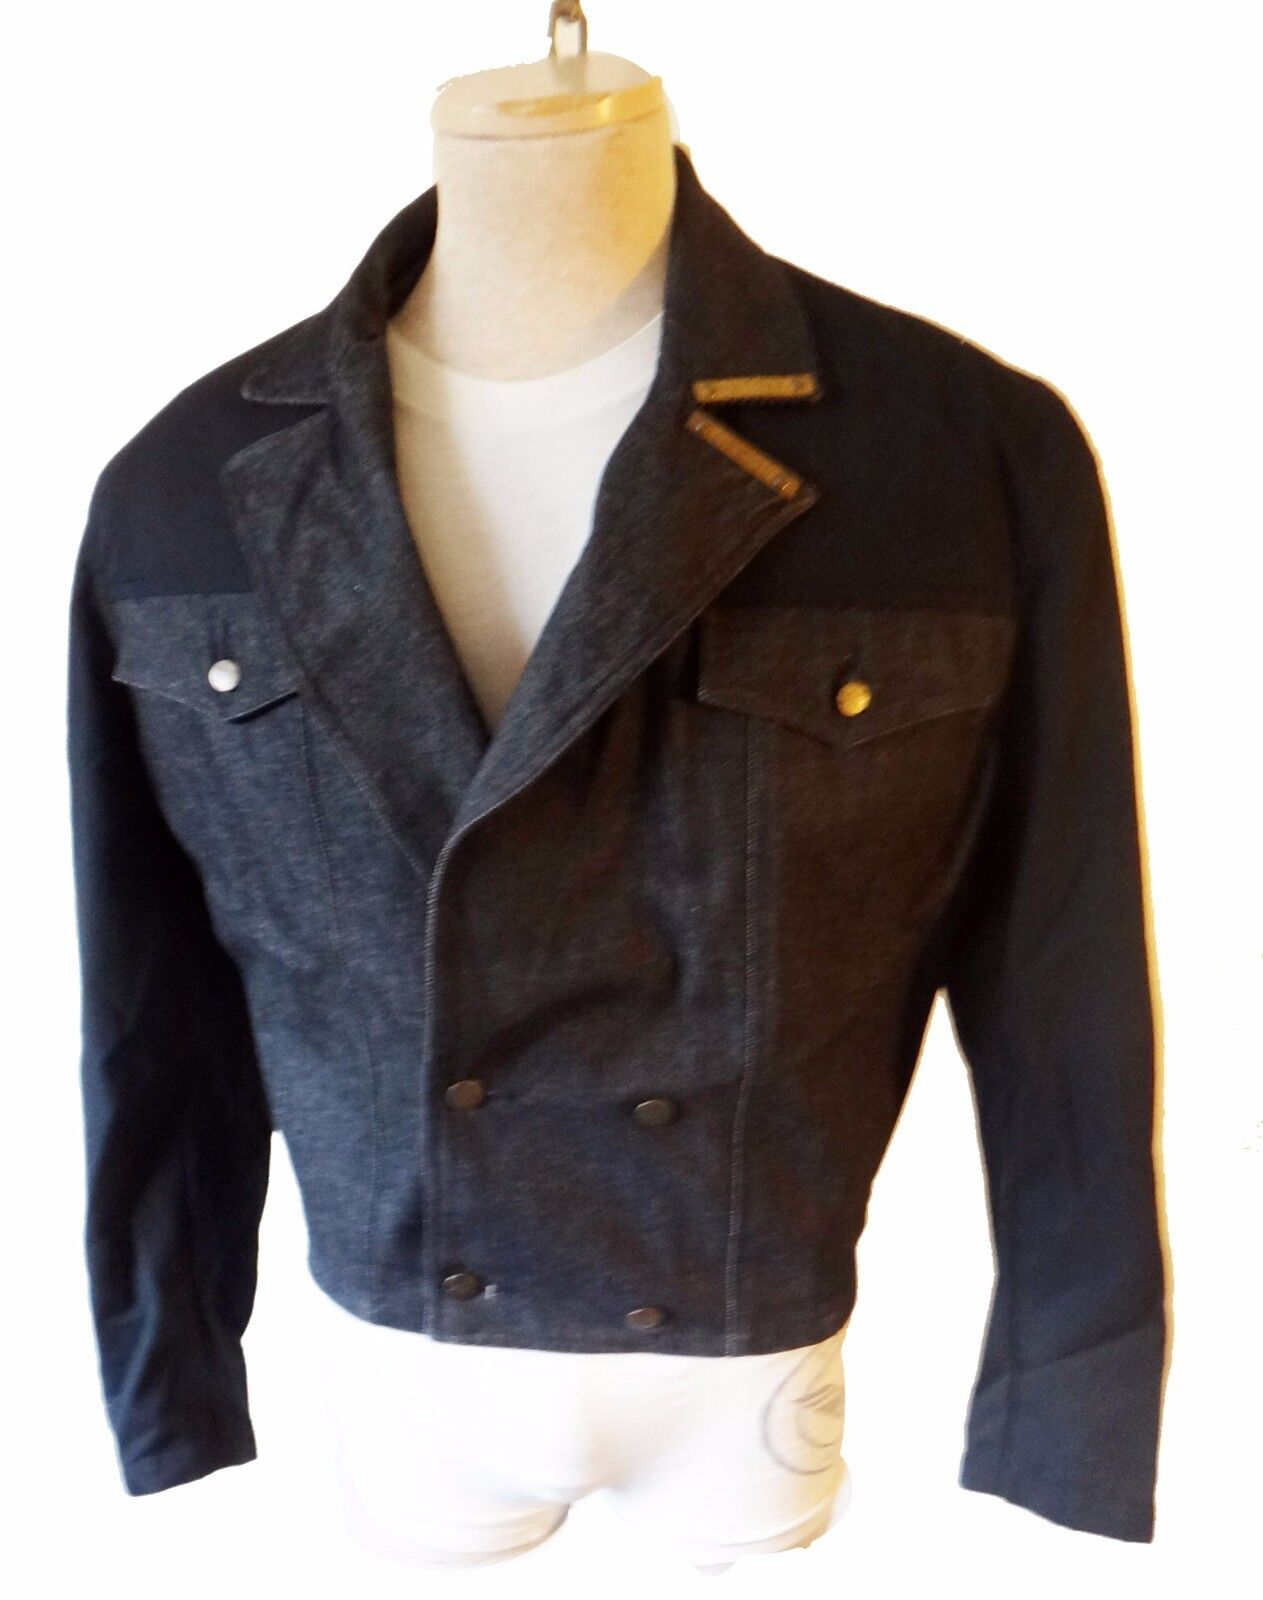 GIRBAUD Marithe Francois 1980 Crop bolero cut off off off small medium new wave music 598f85